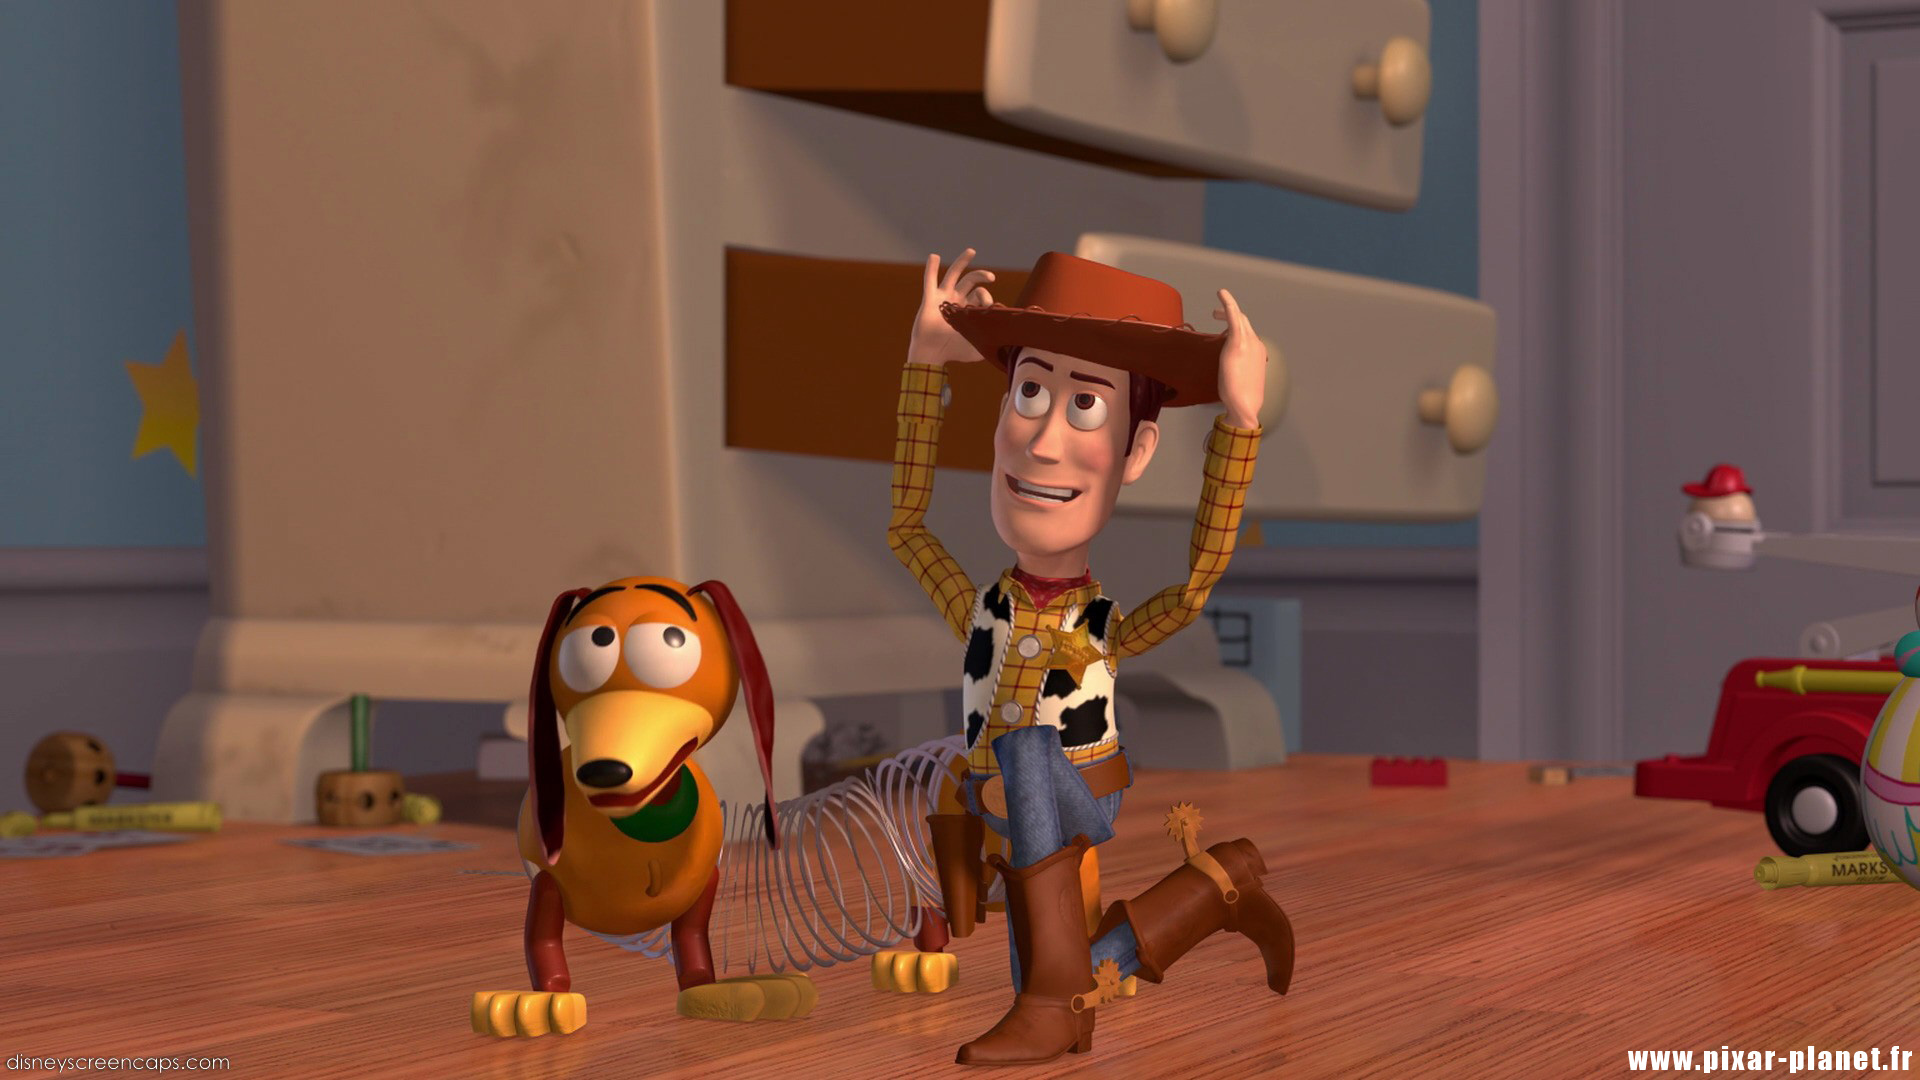 Quotes From Toy Story 2 Pixar Planetfr